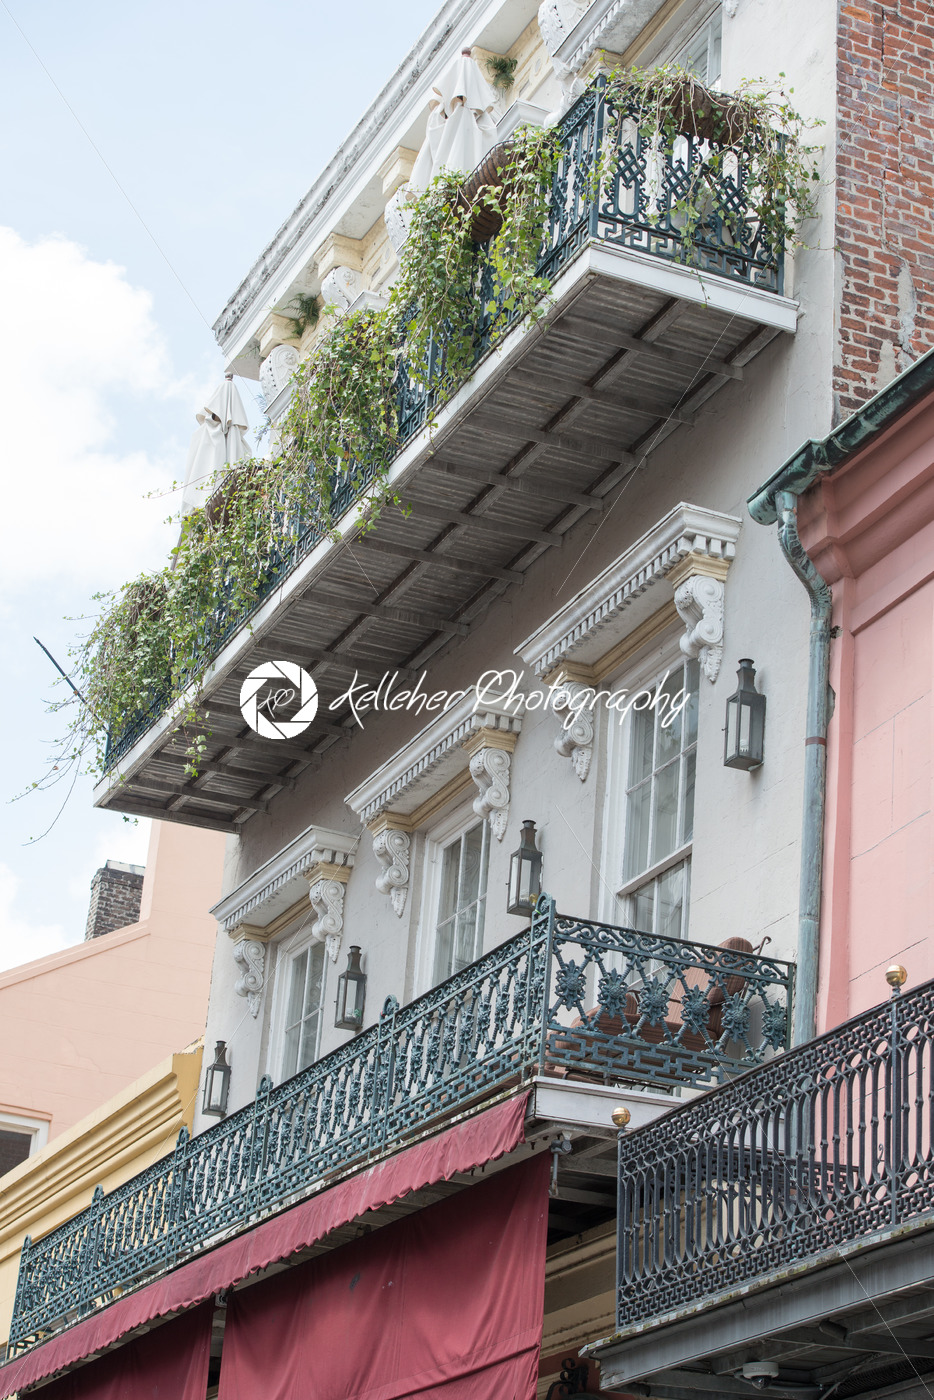 NEW ORLEANS, LA – APRIL 13: Street in the French Quarter of New Orleans, Louisiana showing historic buldings with unique architecture on April 13, 2014 - Kelleher Photography Store